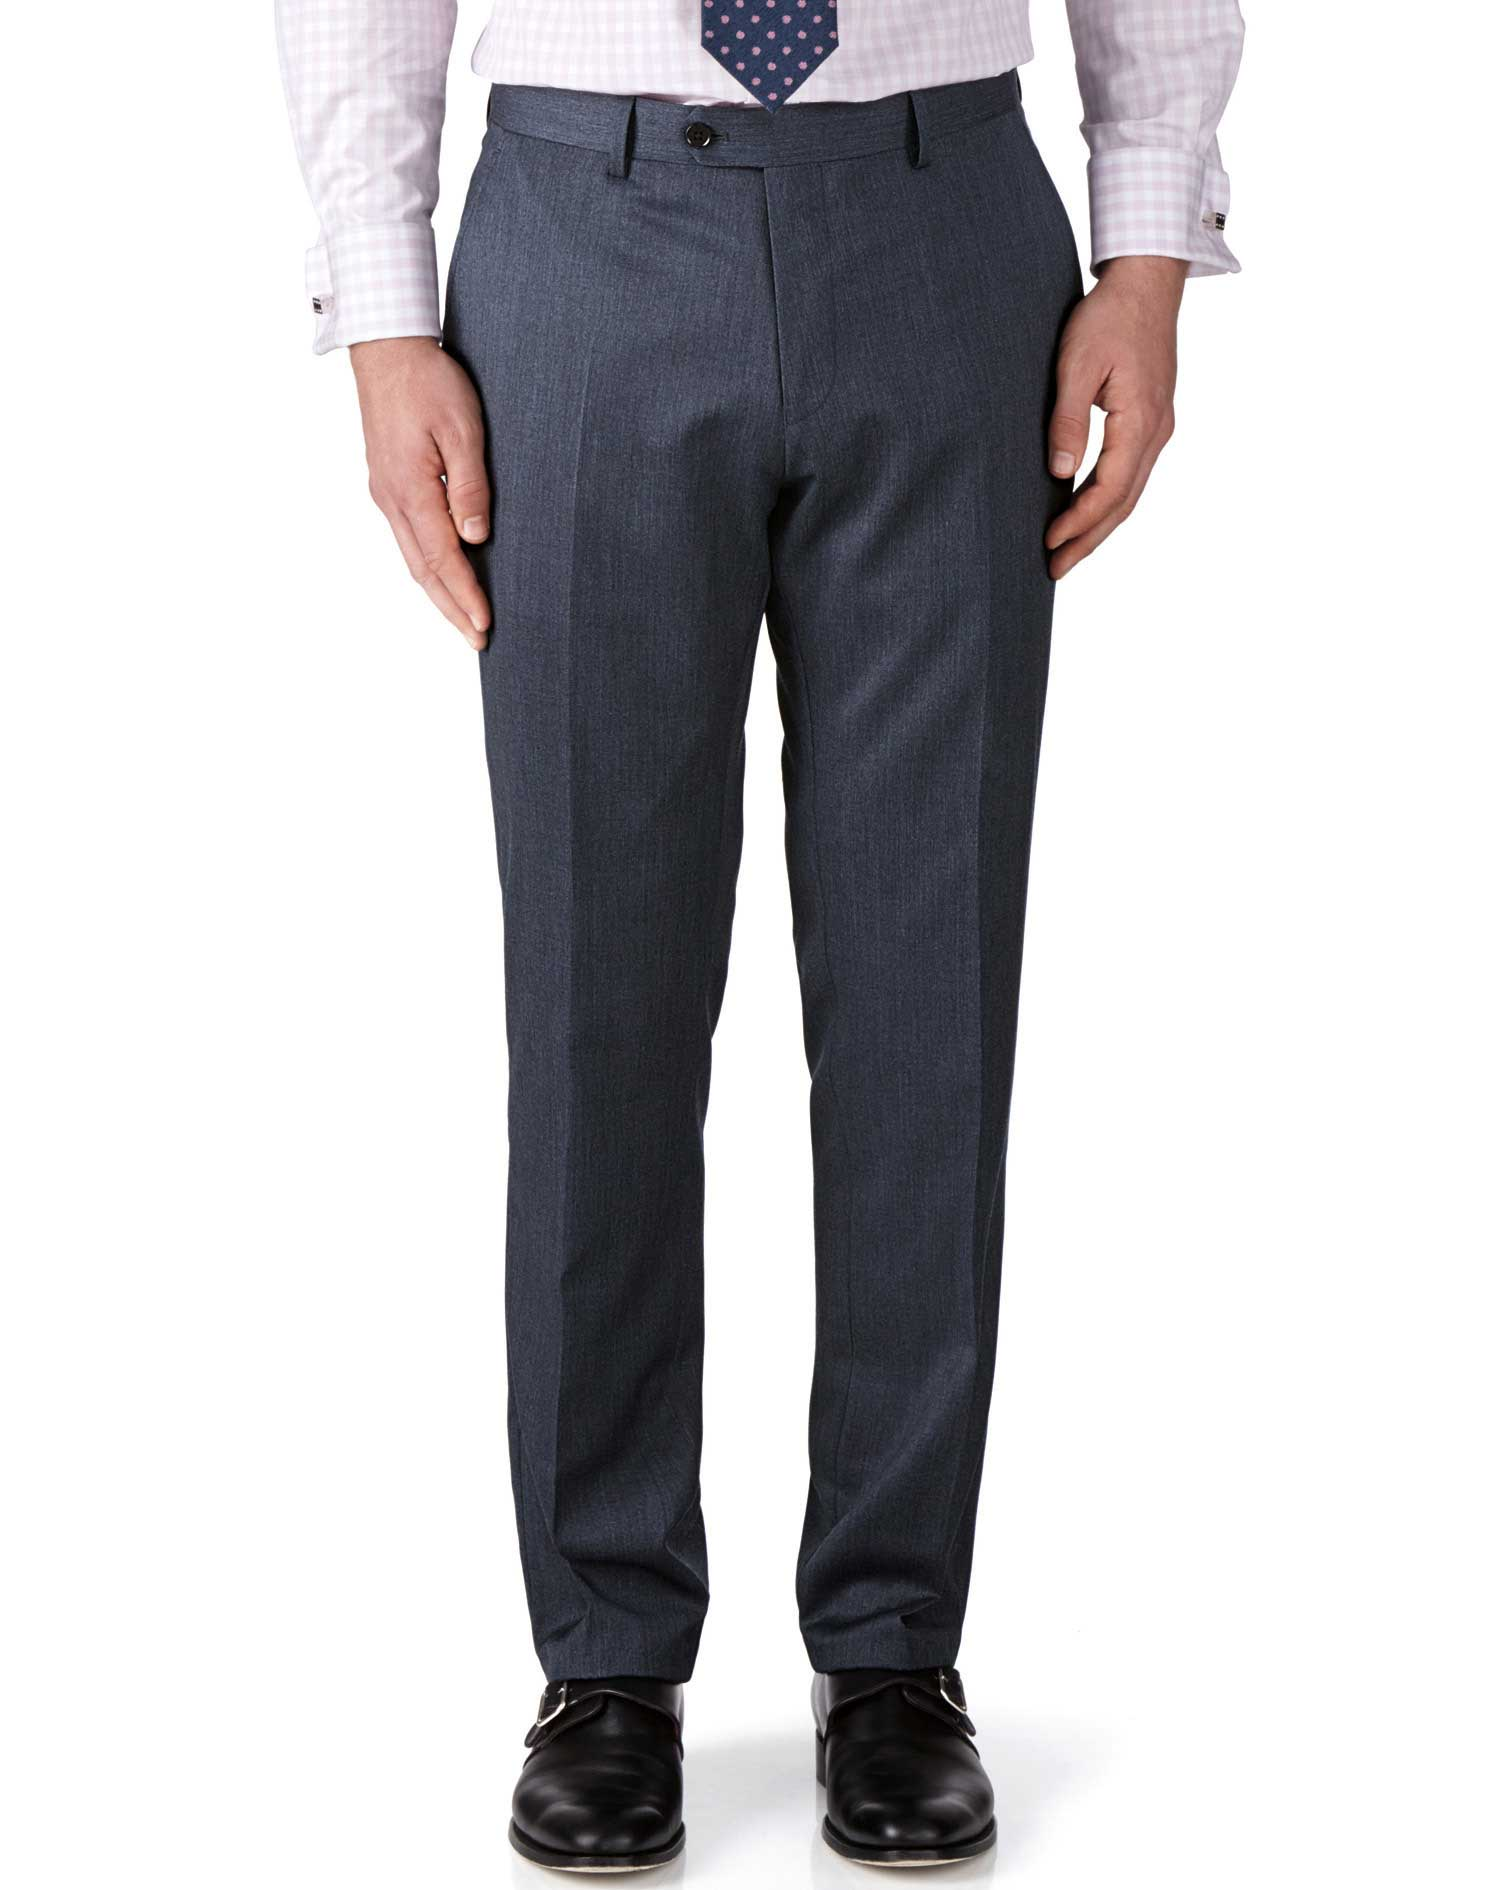 Airforce Blue Classic Fit Twill Business Suit Trousers Size W36 L38 by Charles Tyrwhitt